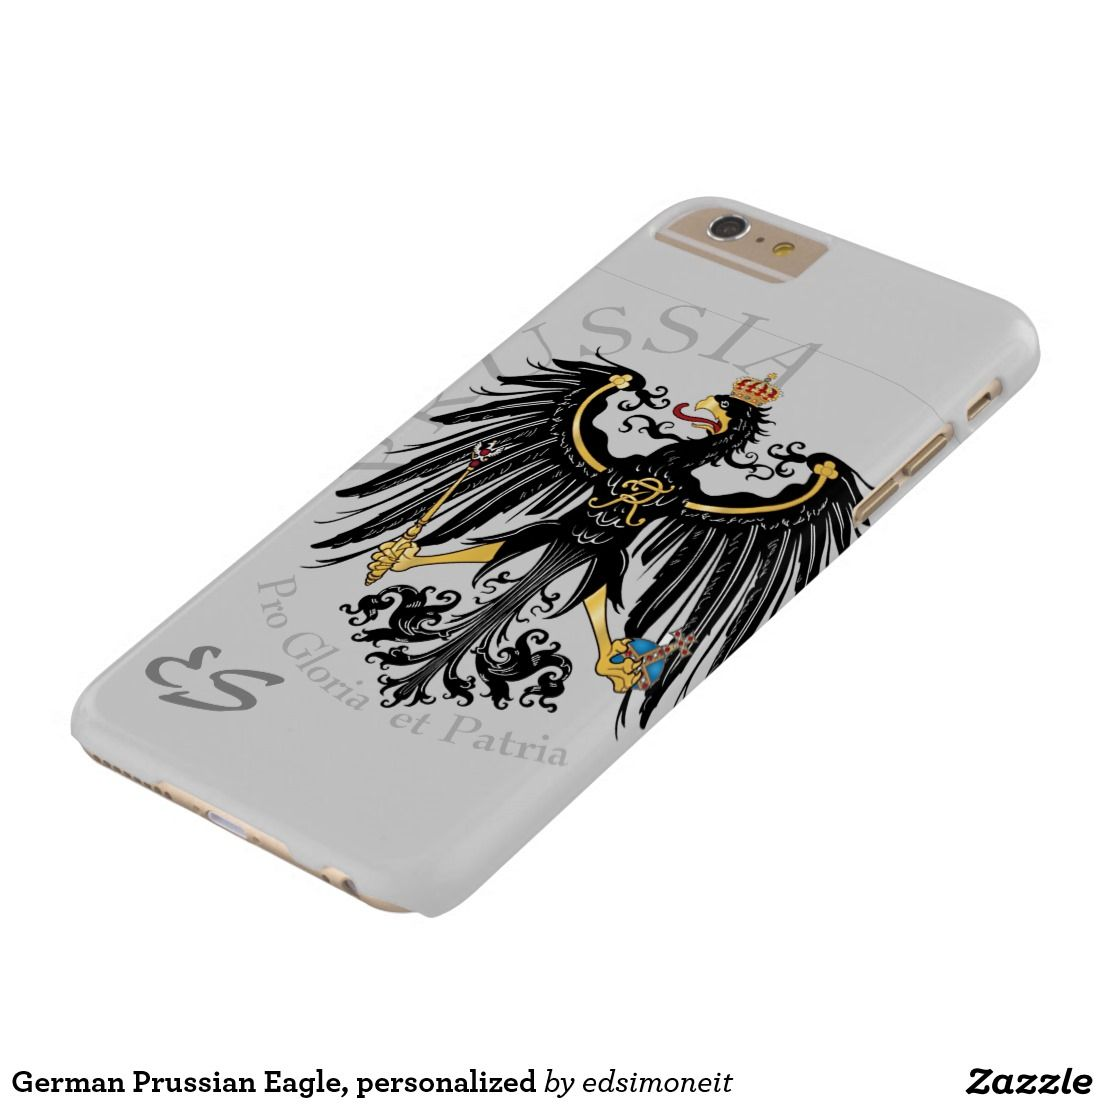 German Prussian Eagle, personalized